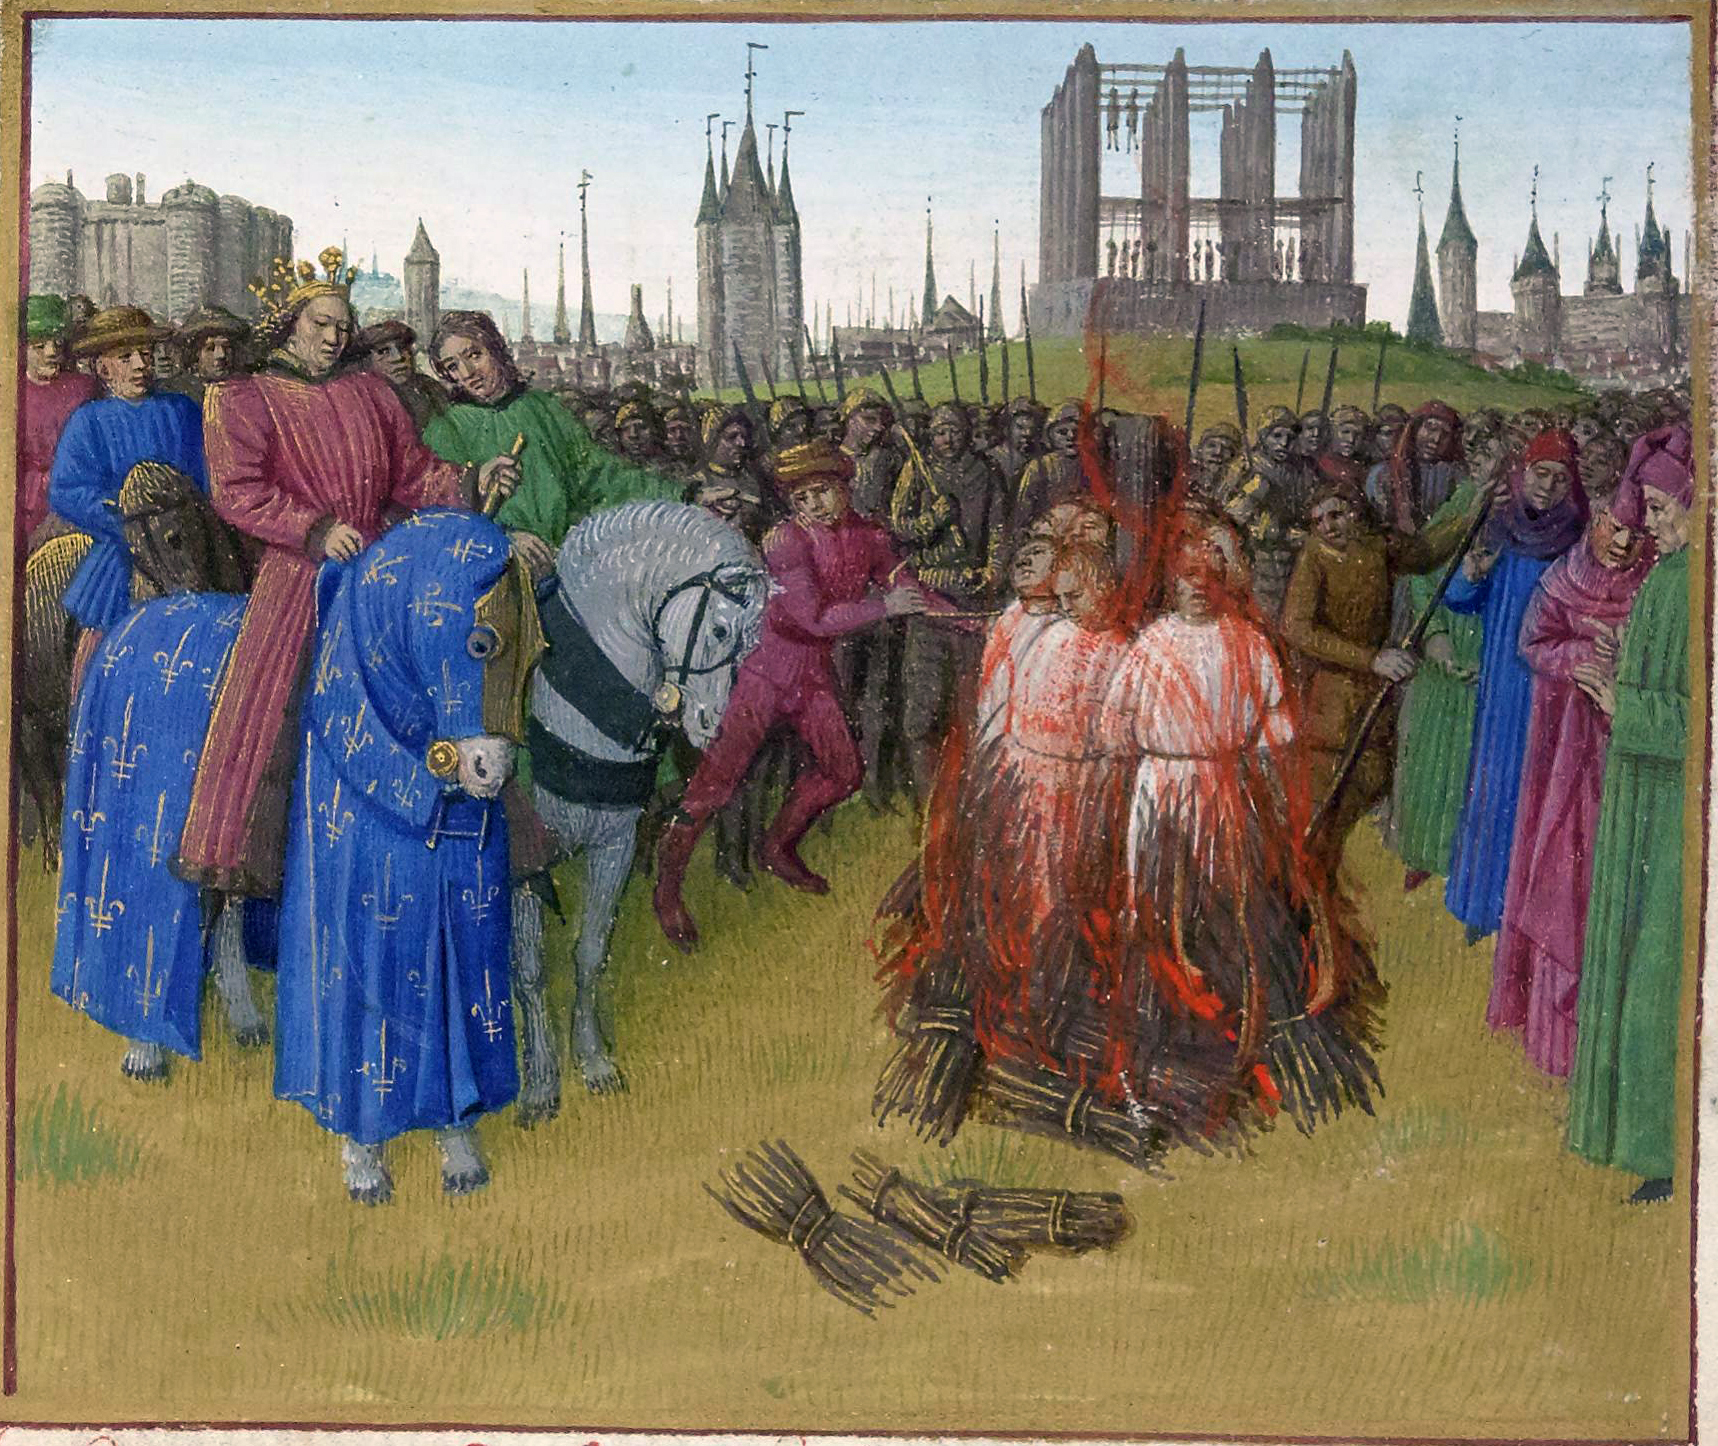 The burning of the Amalrician heretics. Circa 1210.